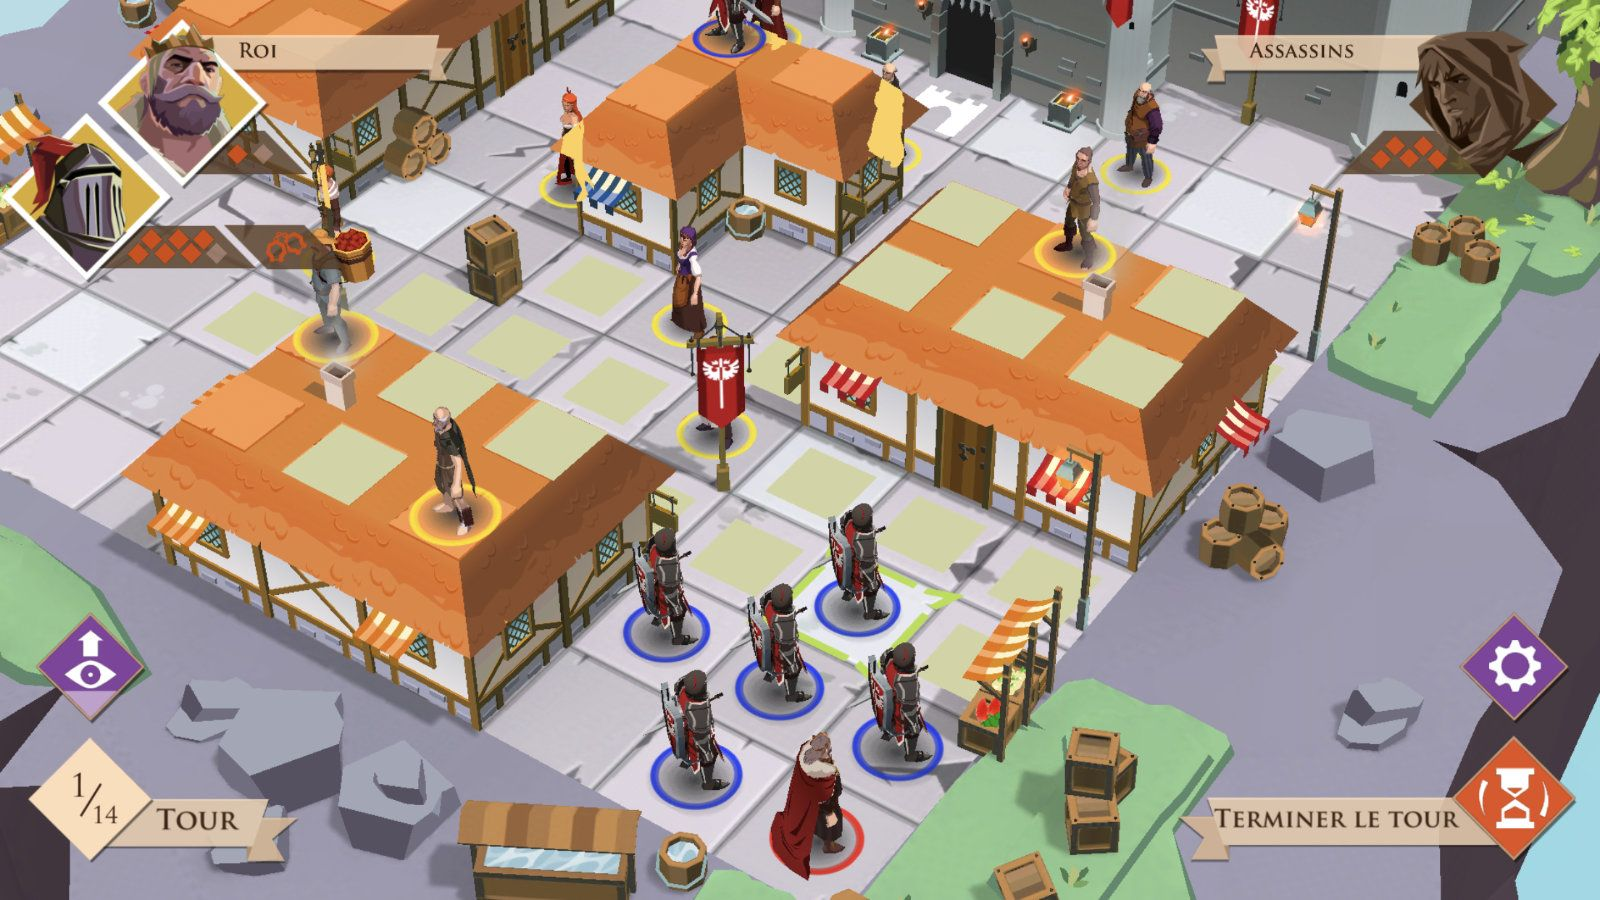 King and Assassins (copie d'écran 5 sur iPhone / iPad)